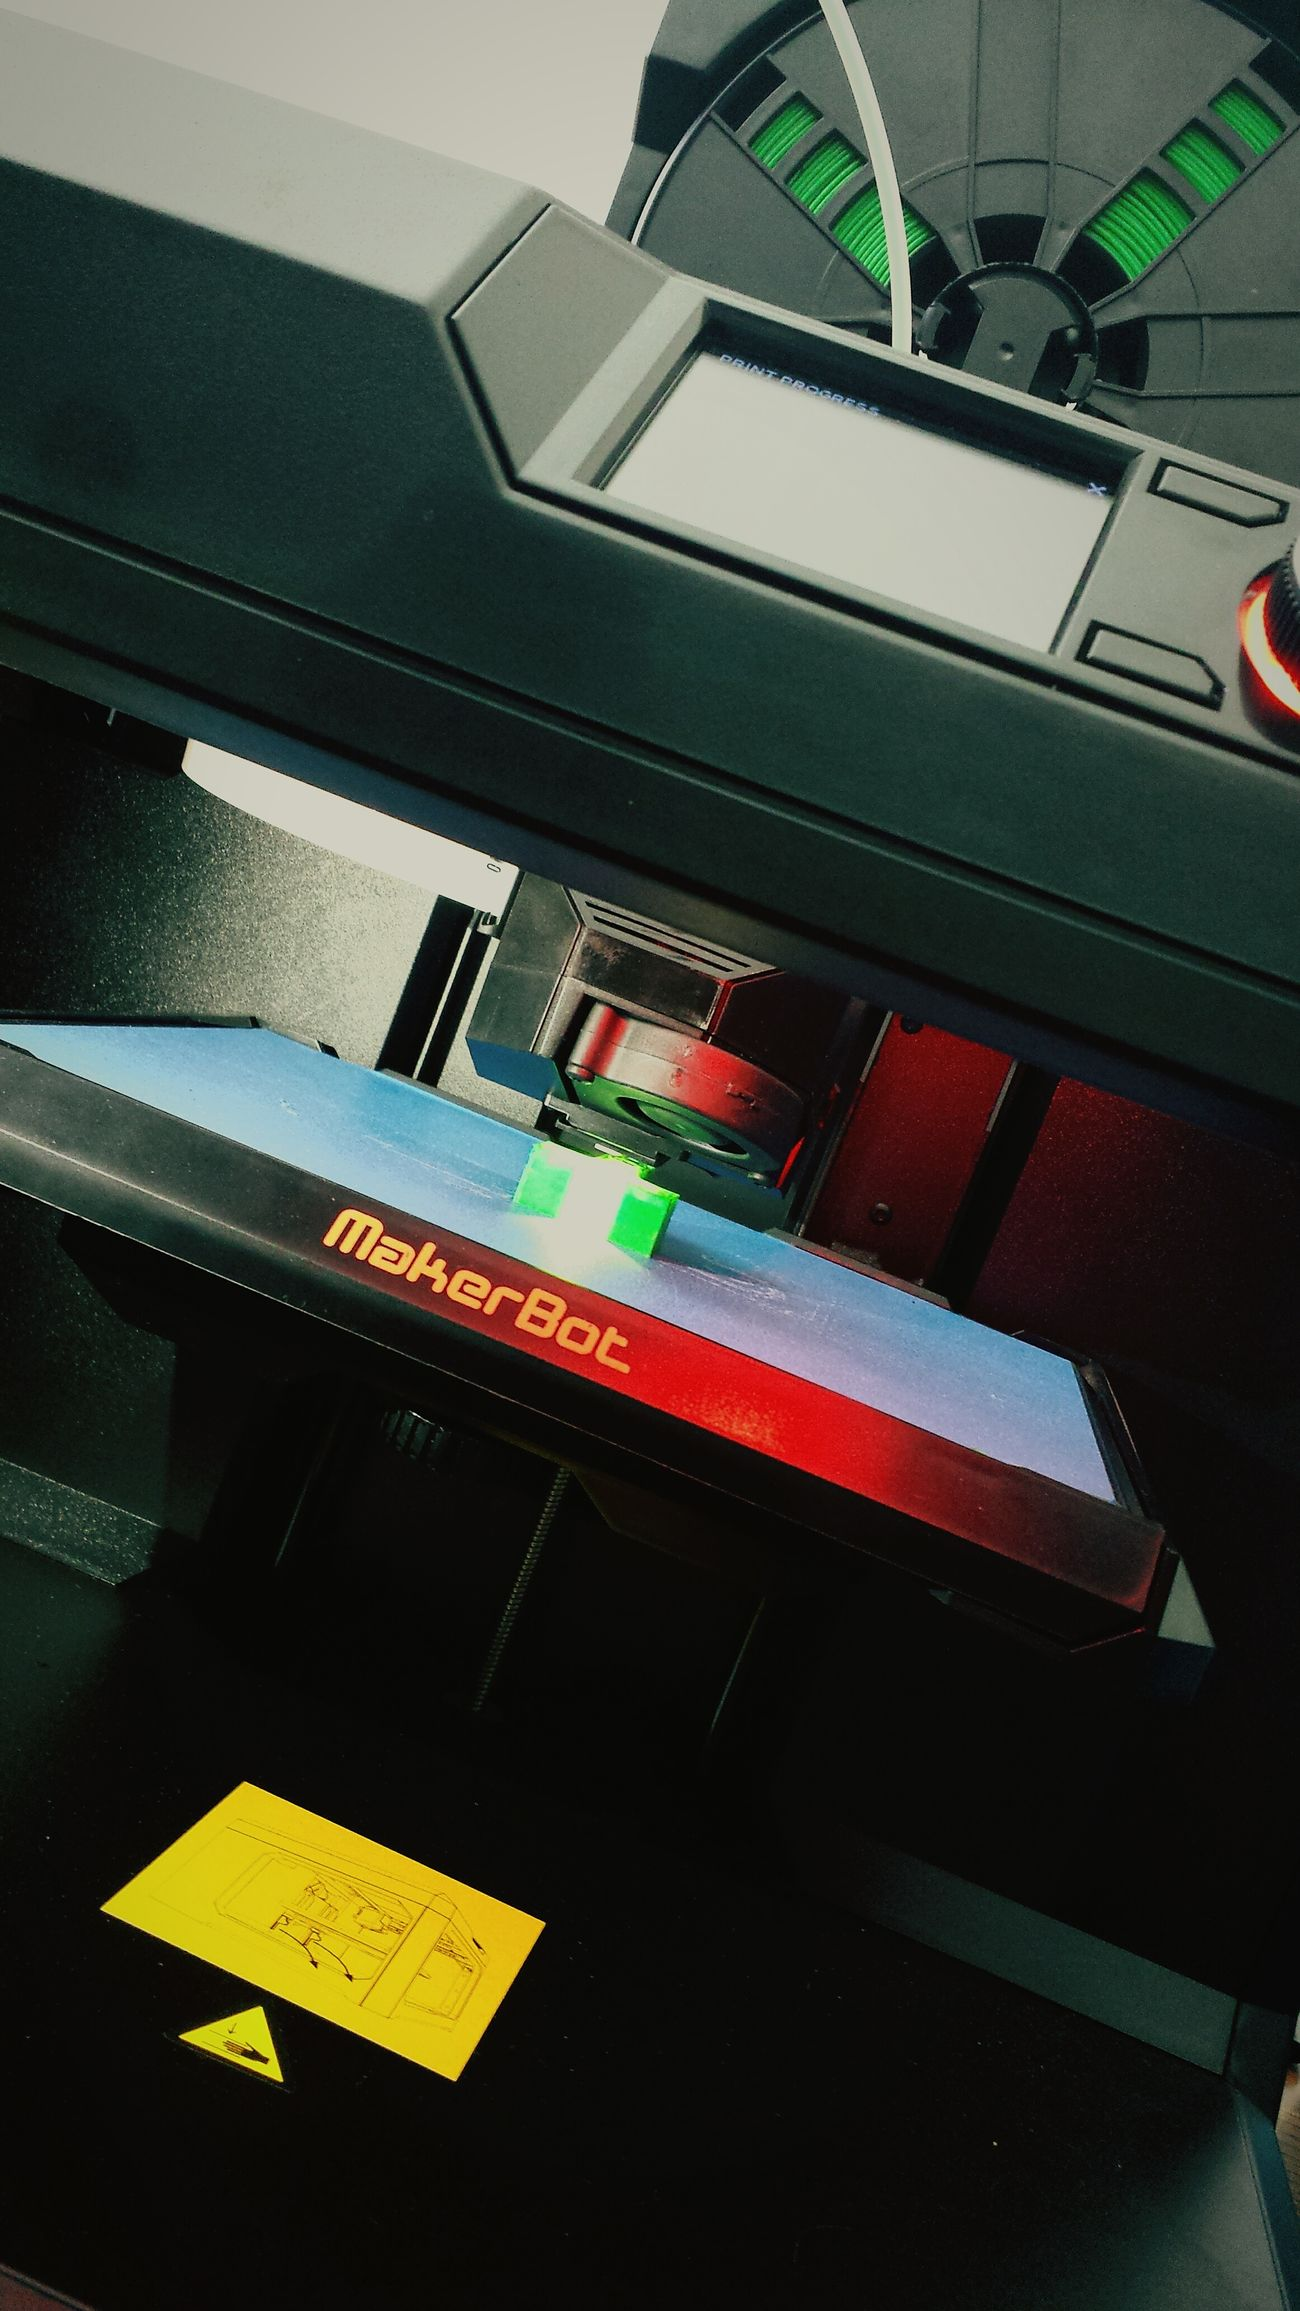 Biomédicos 3D Printer Awesome Nice Too Many Options I Want This I Love Science